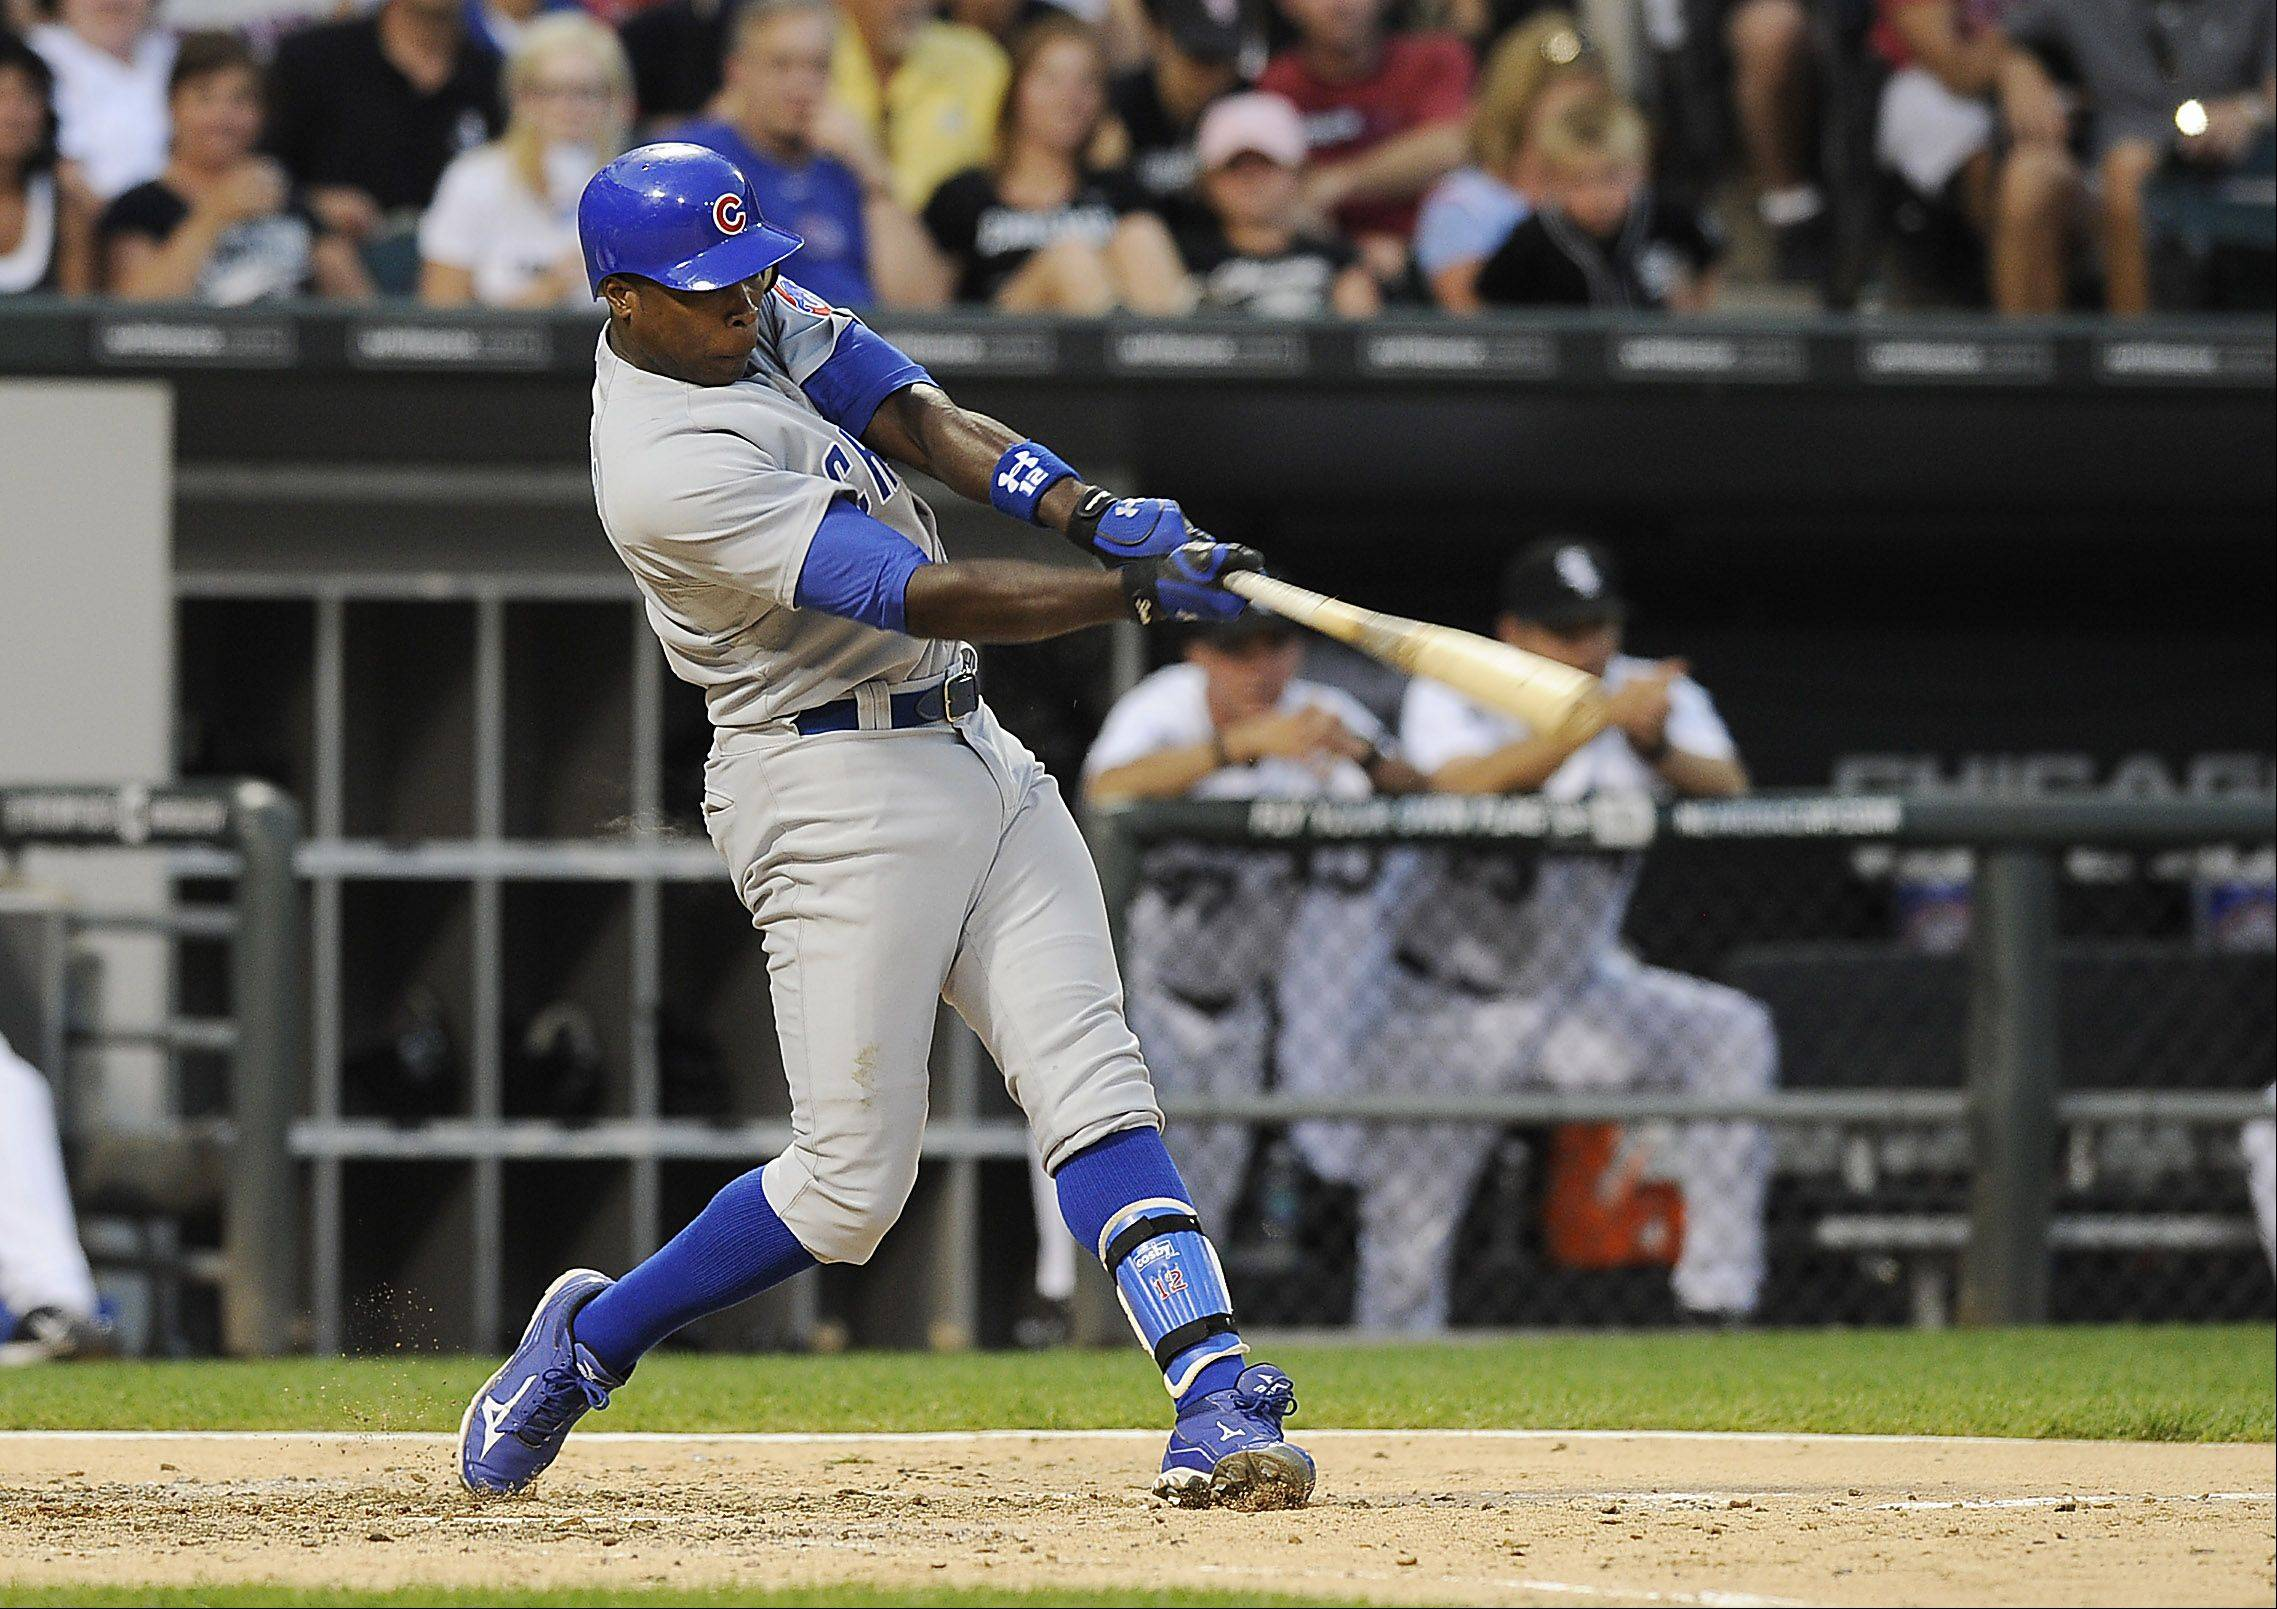 Chicago Cubs' Alfonso Soriano hits a fifth inning home run.